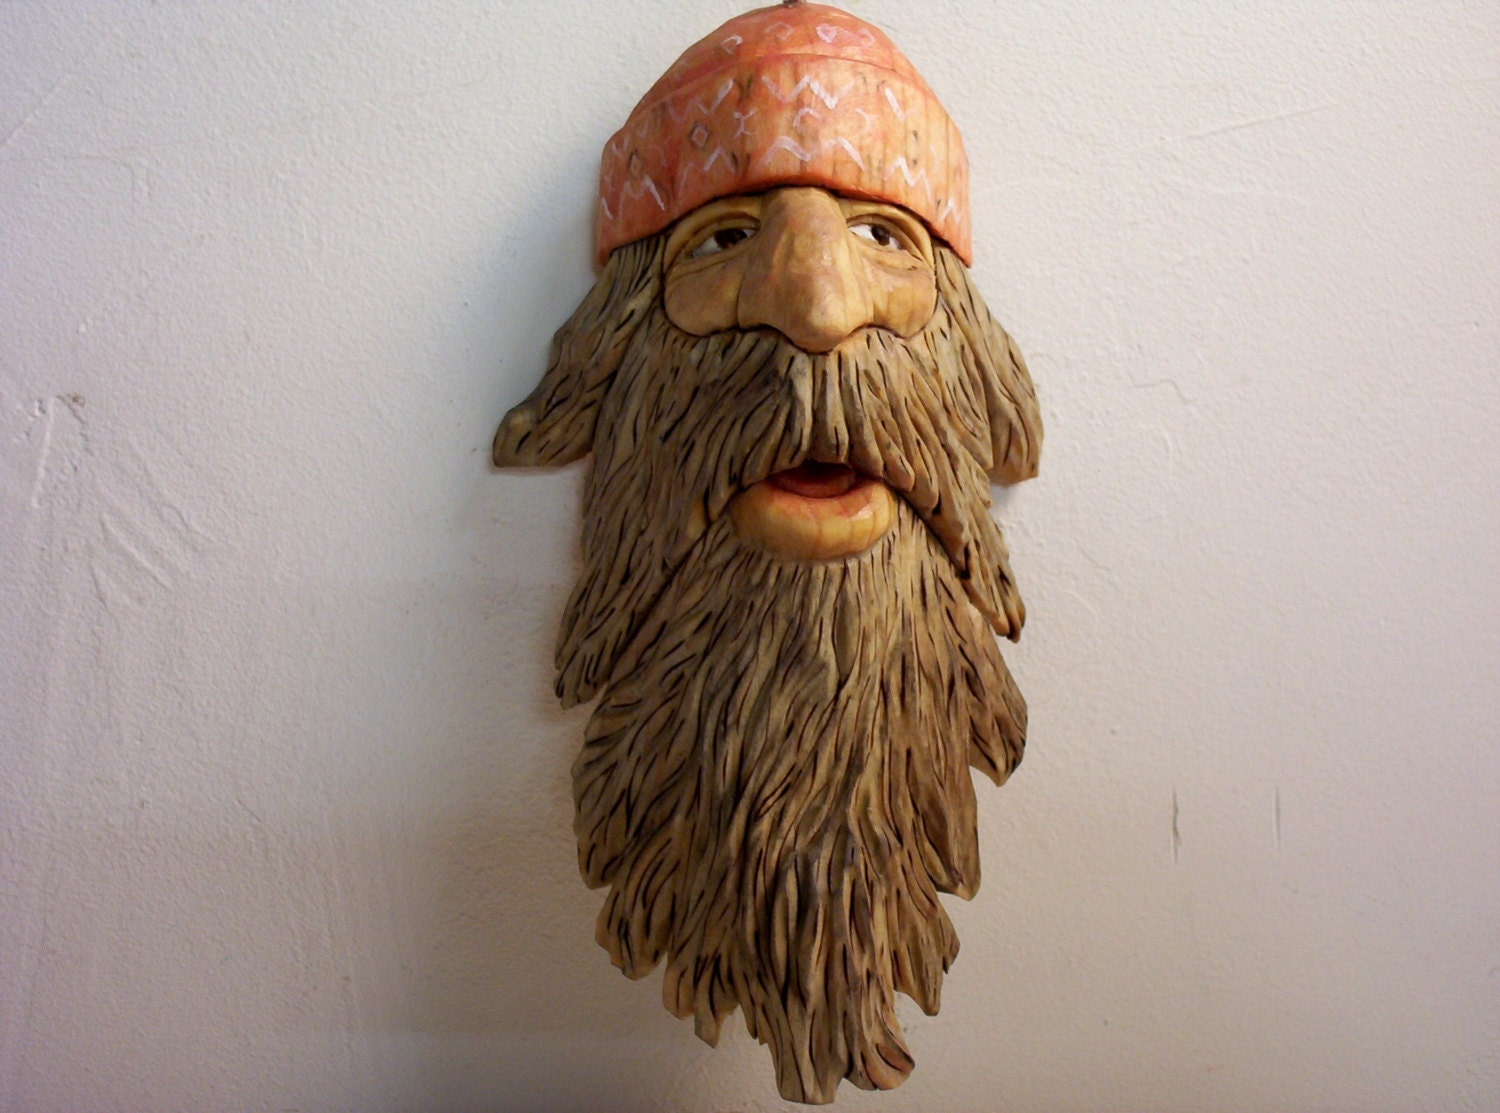 Hand carved caricature motorcycle rider good ole boy wood